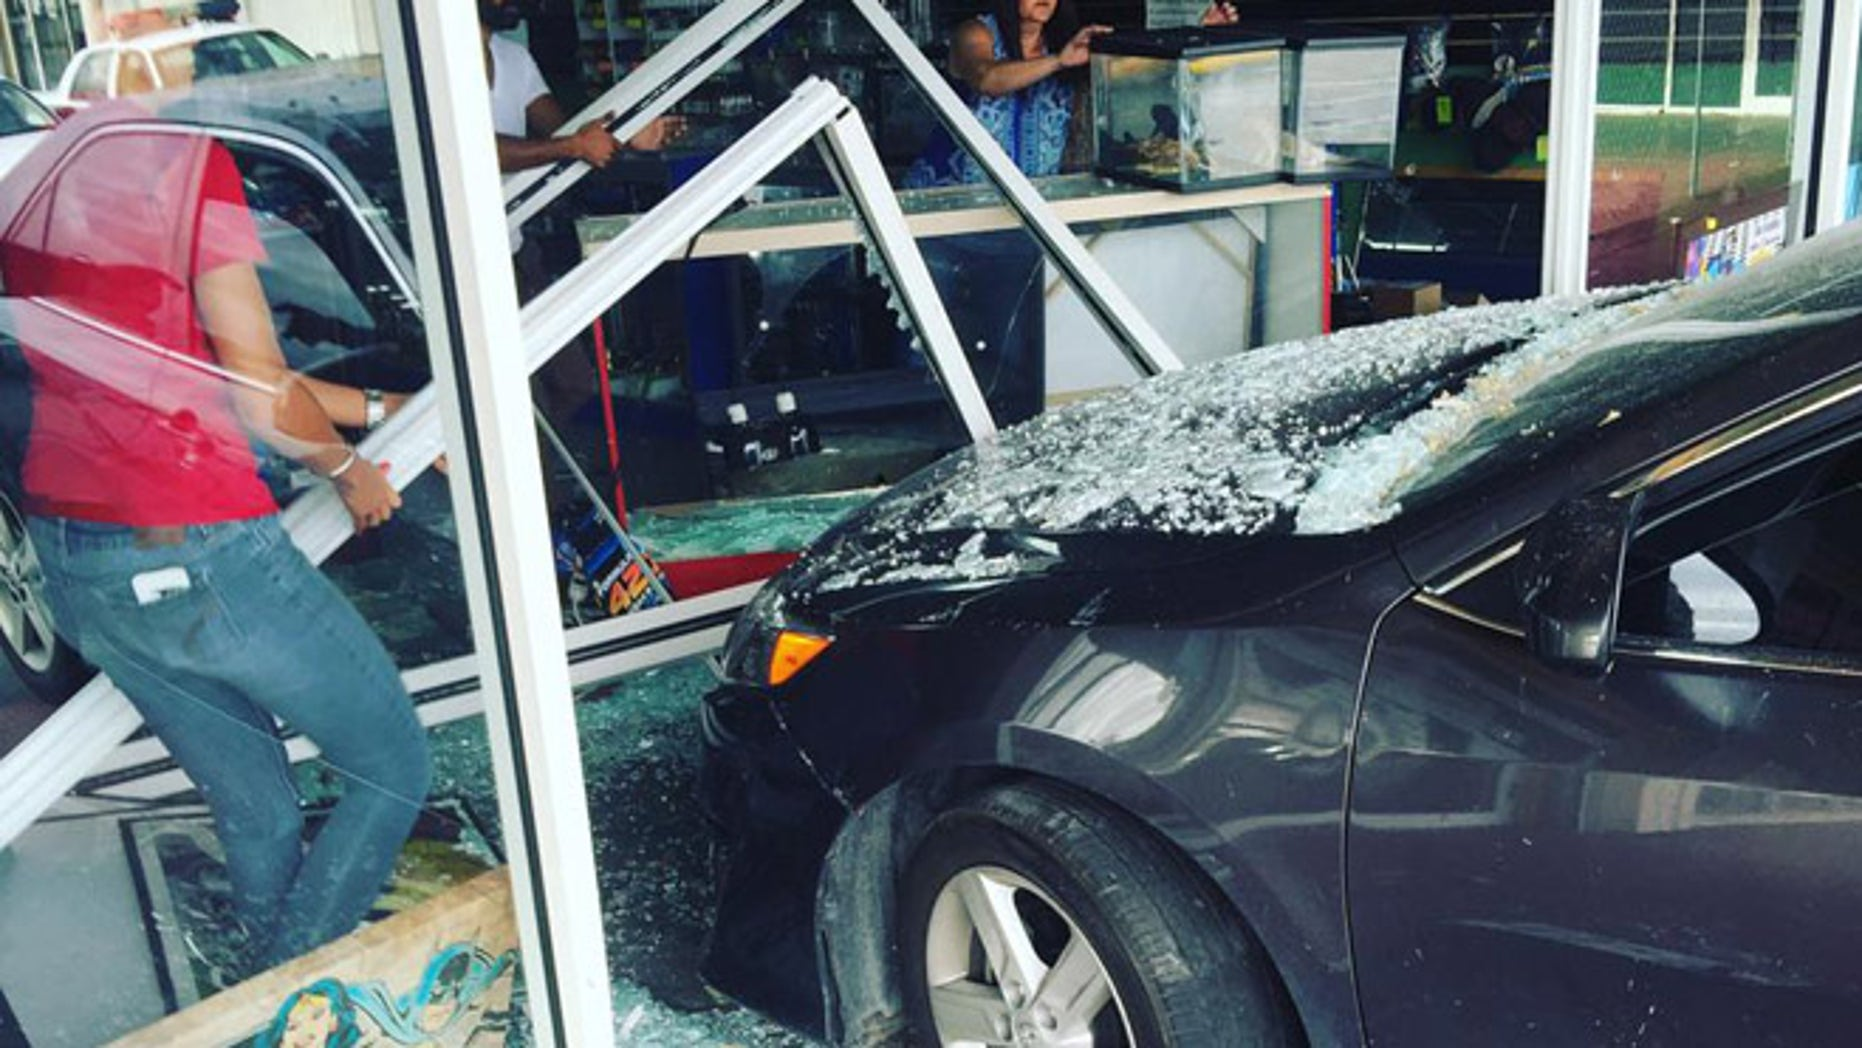 A car crashed Wednesday into a shop in Hialeah, Florida, that sells reptiles. (Subhan Malik)